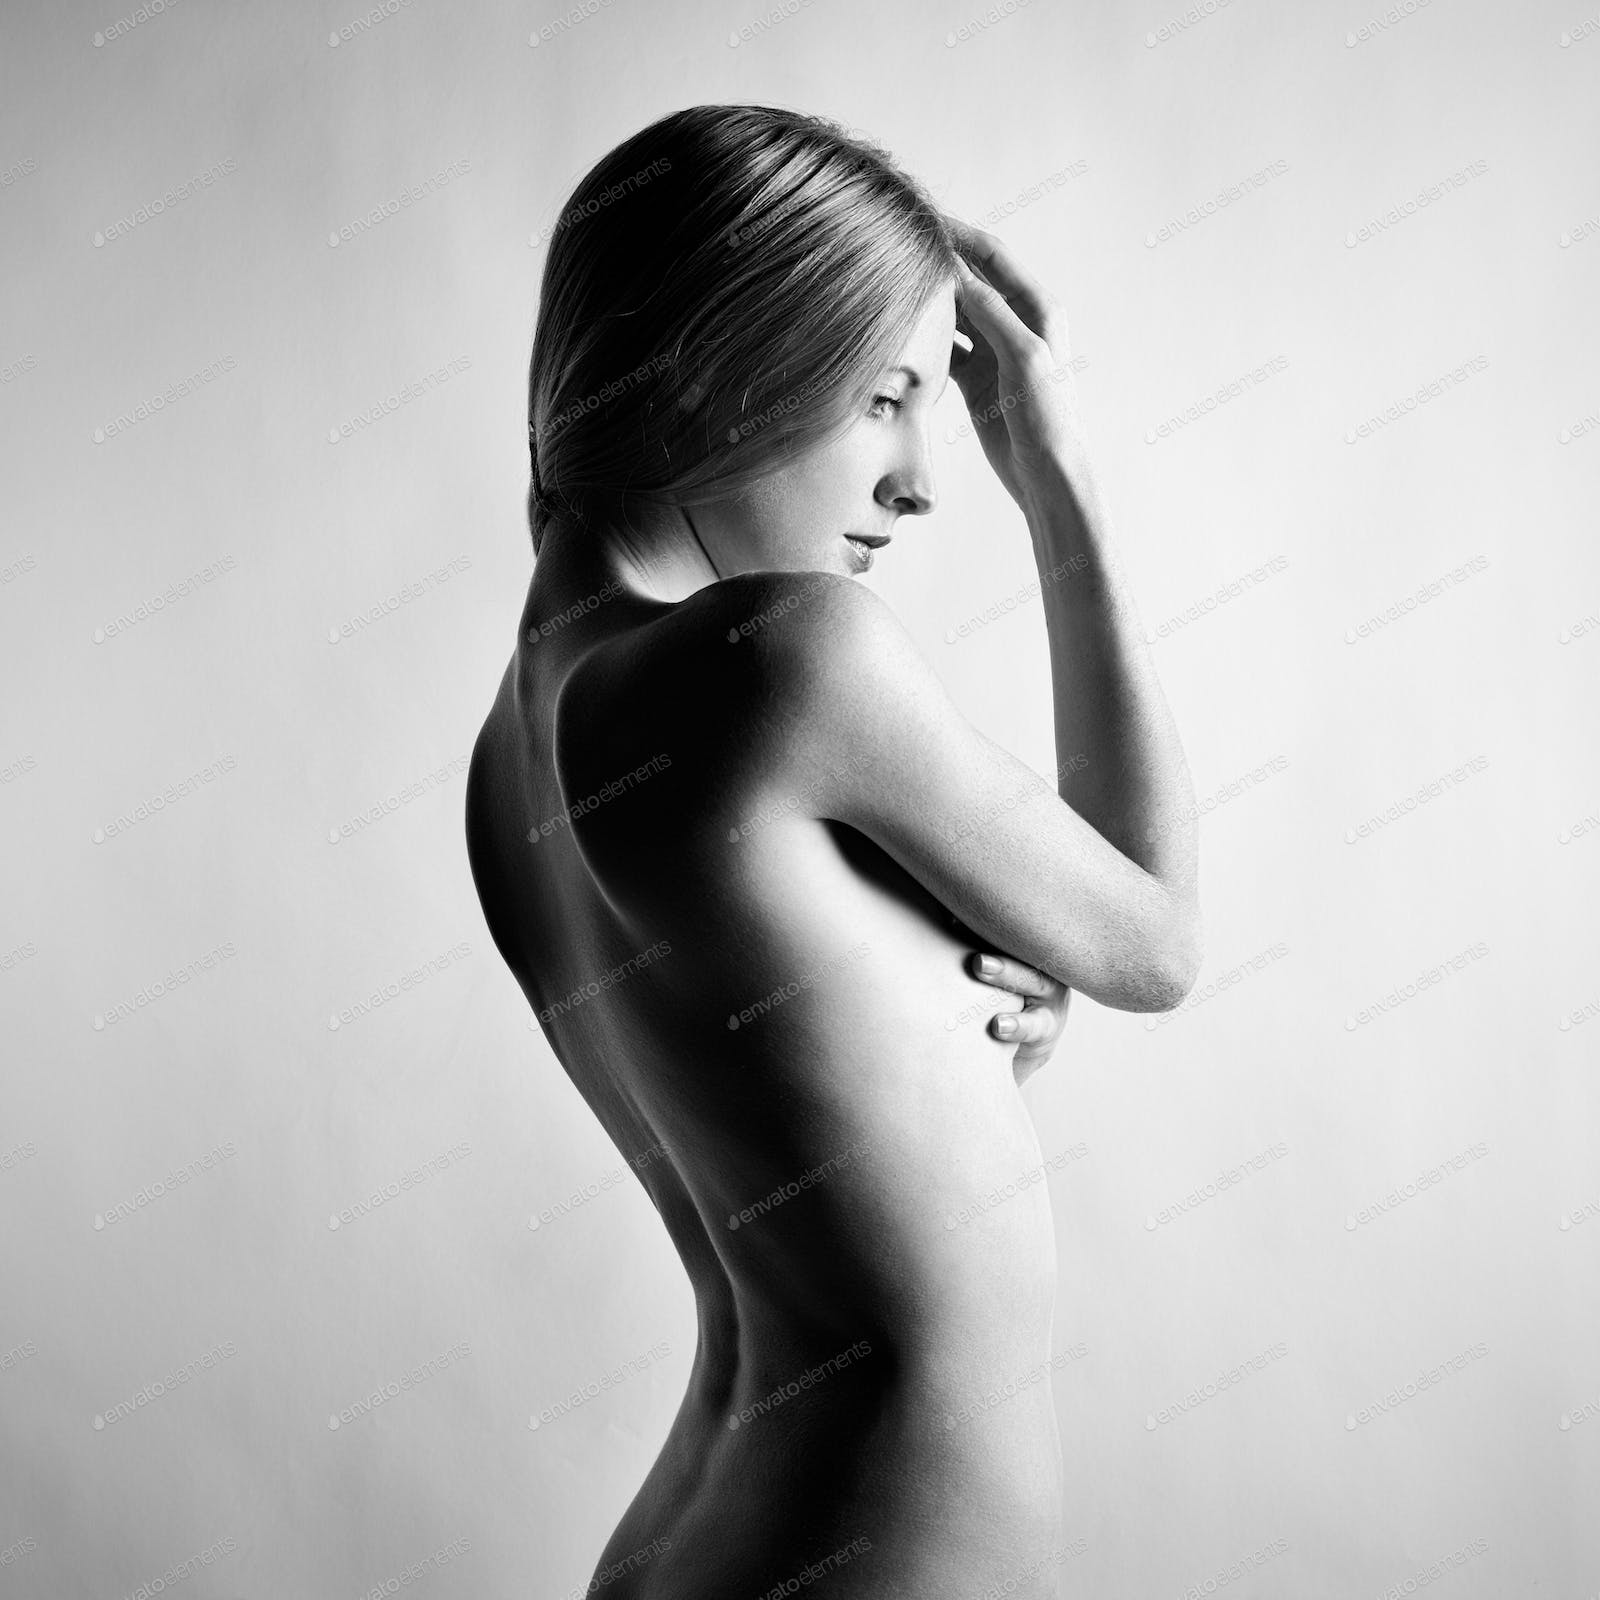 Model nudist The naked